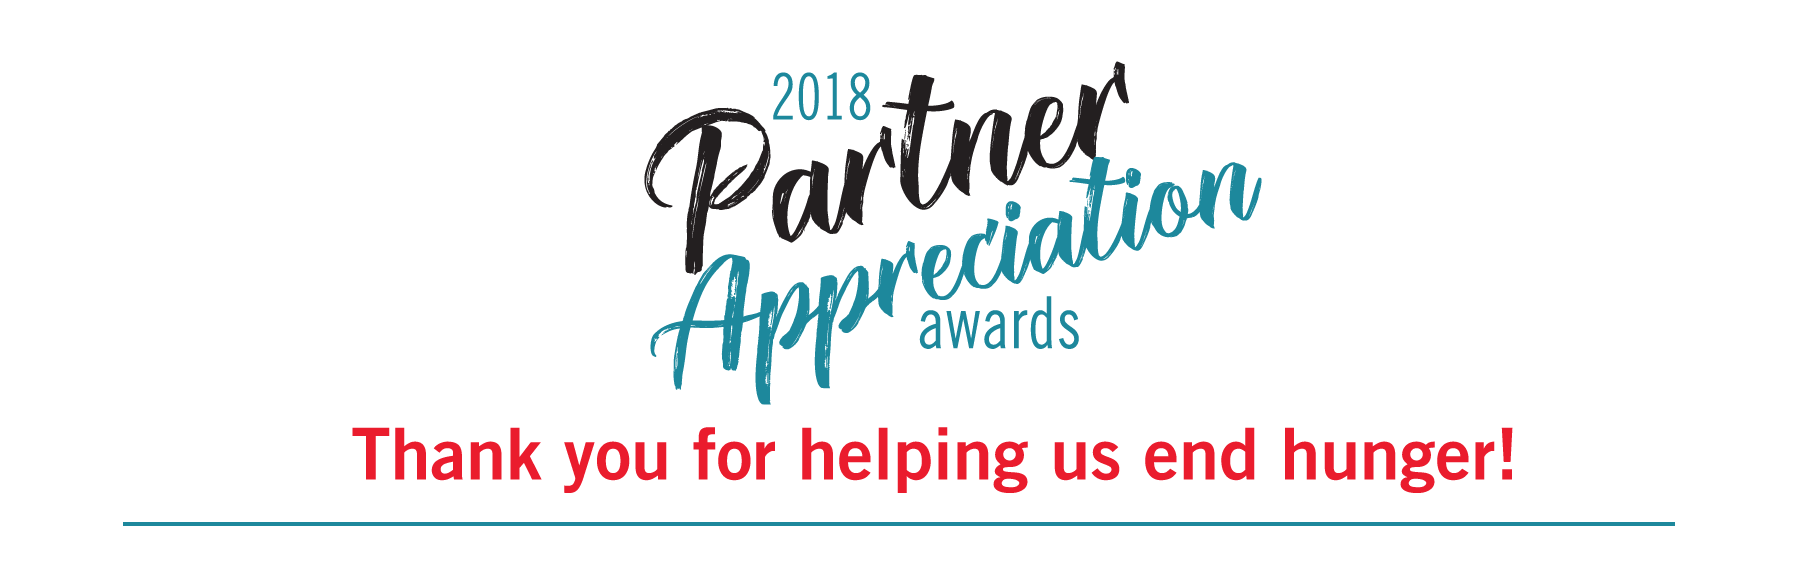 Partner Appreciation 2018